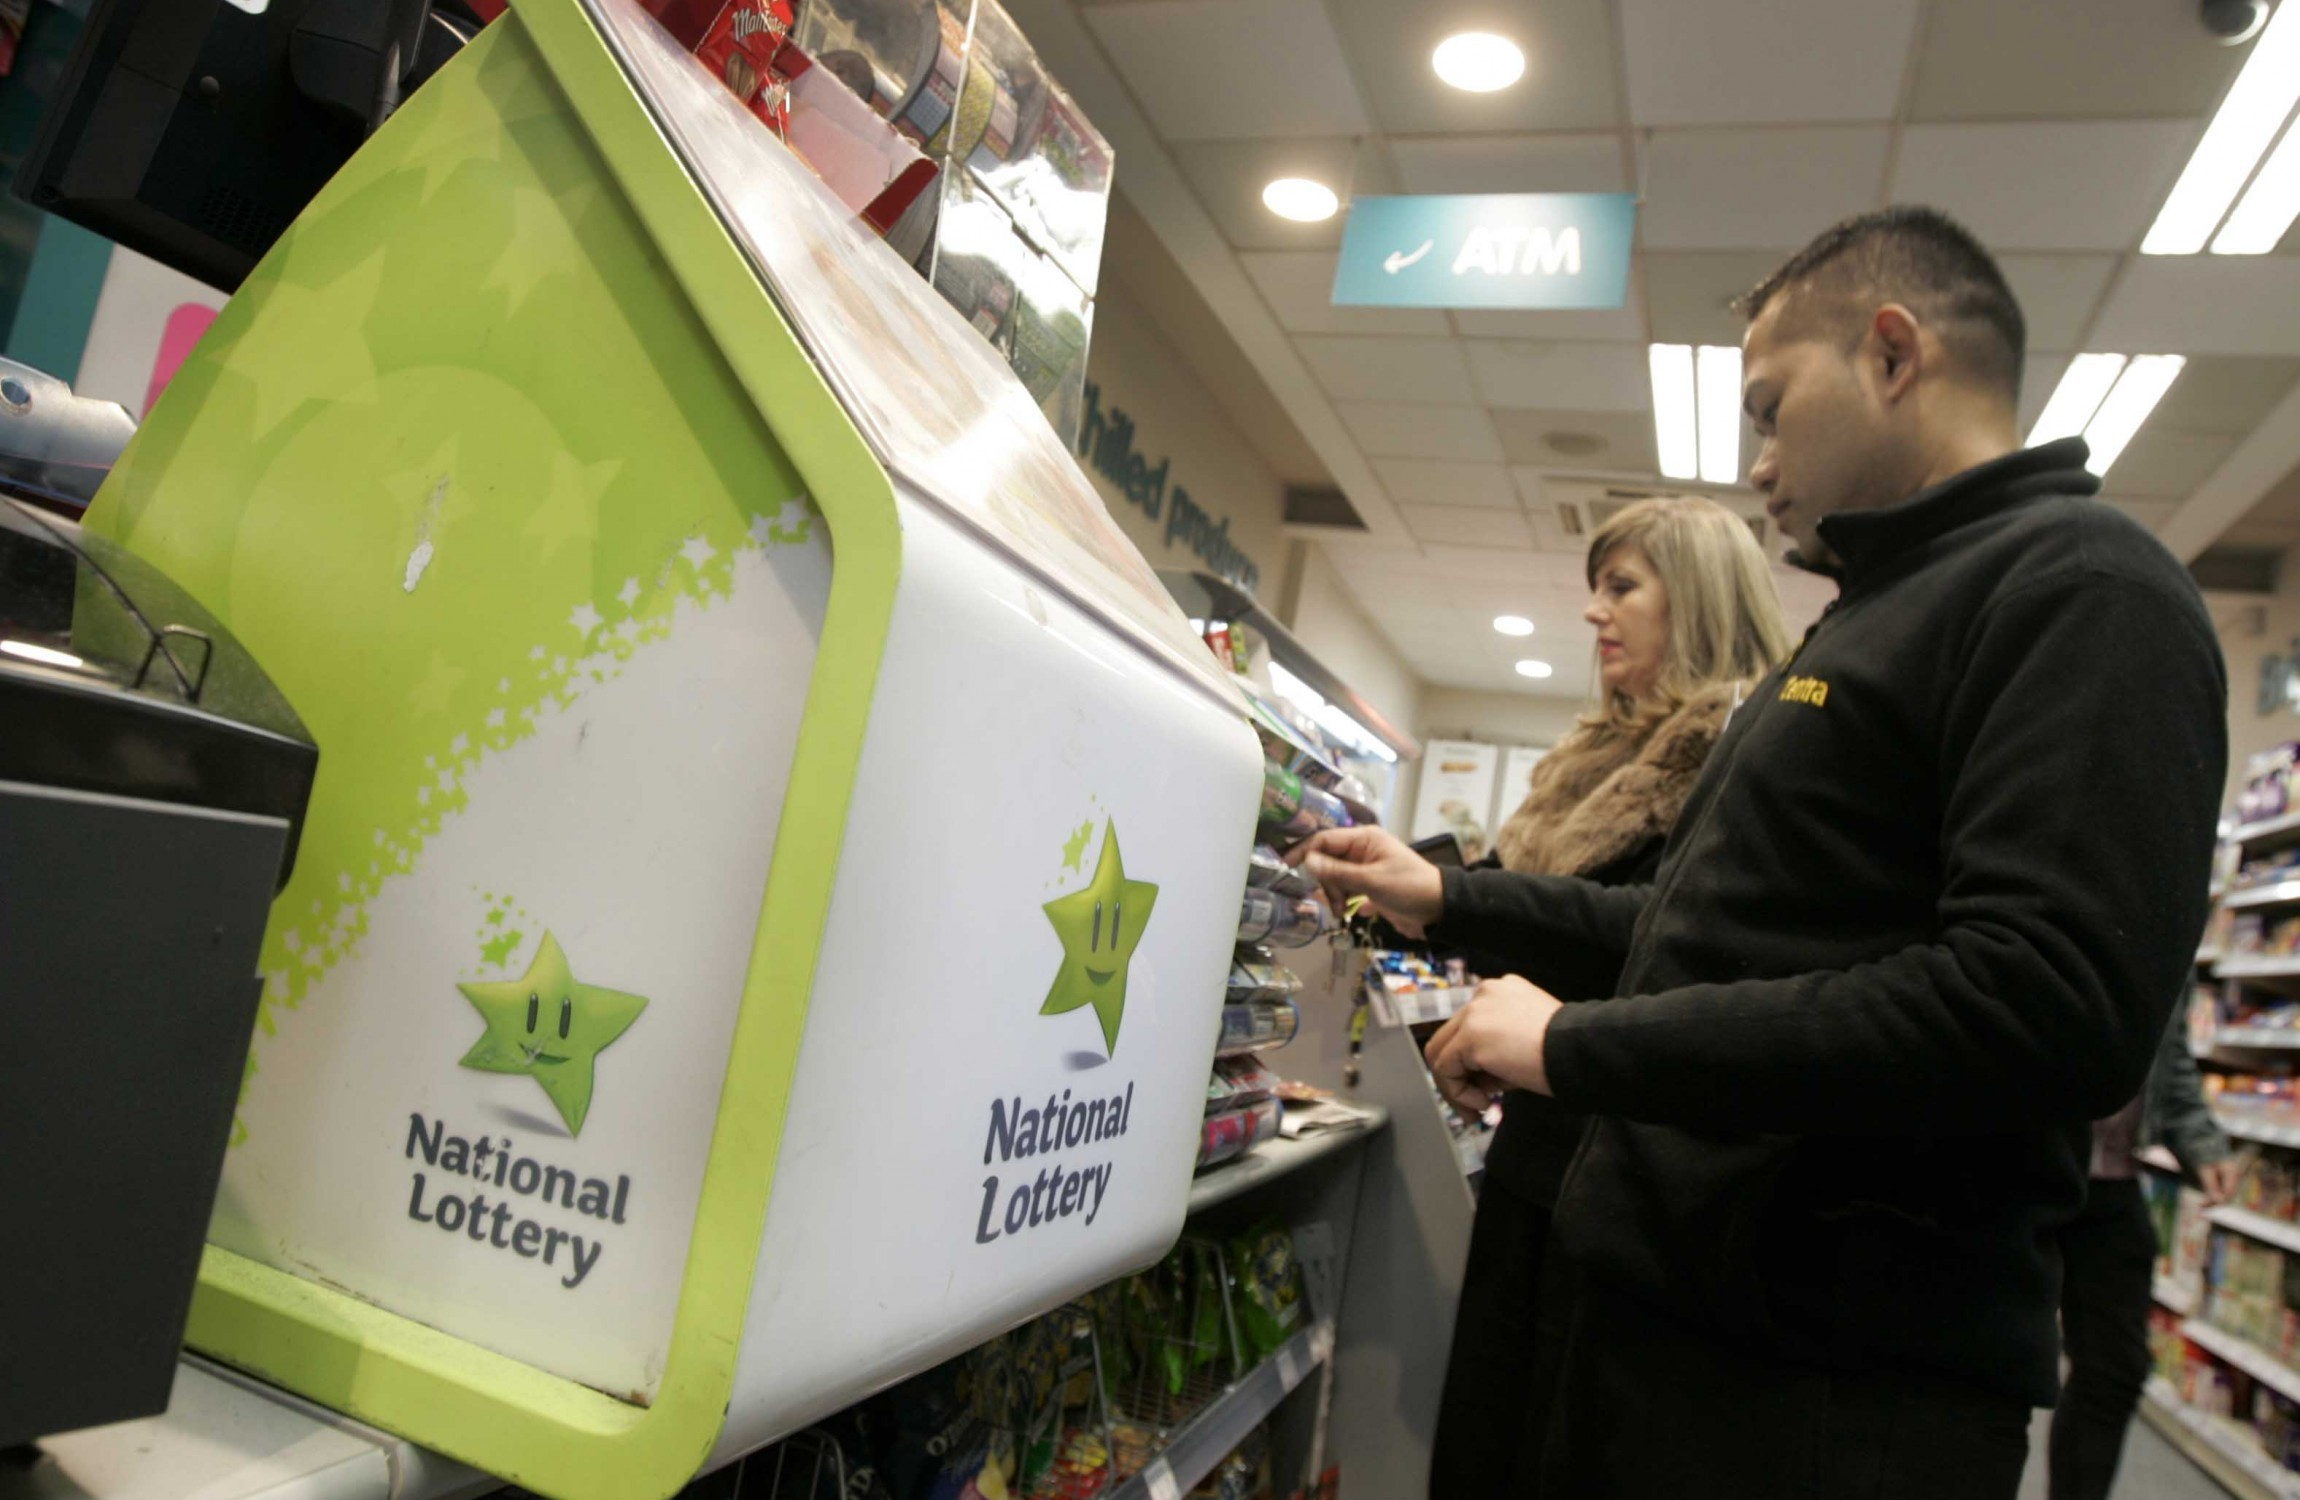 €29m Euromillions victor makes contact with National Lottery